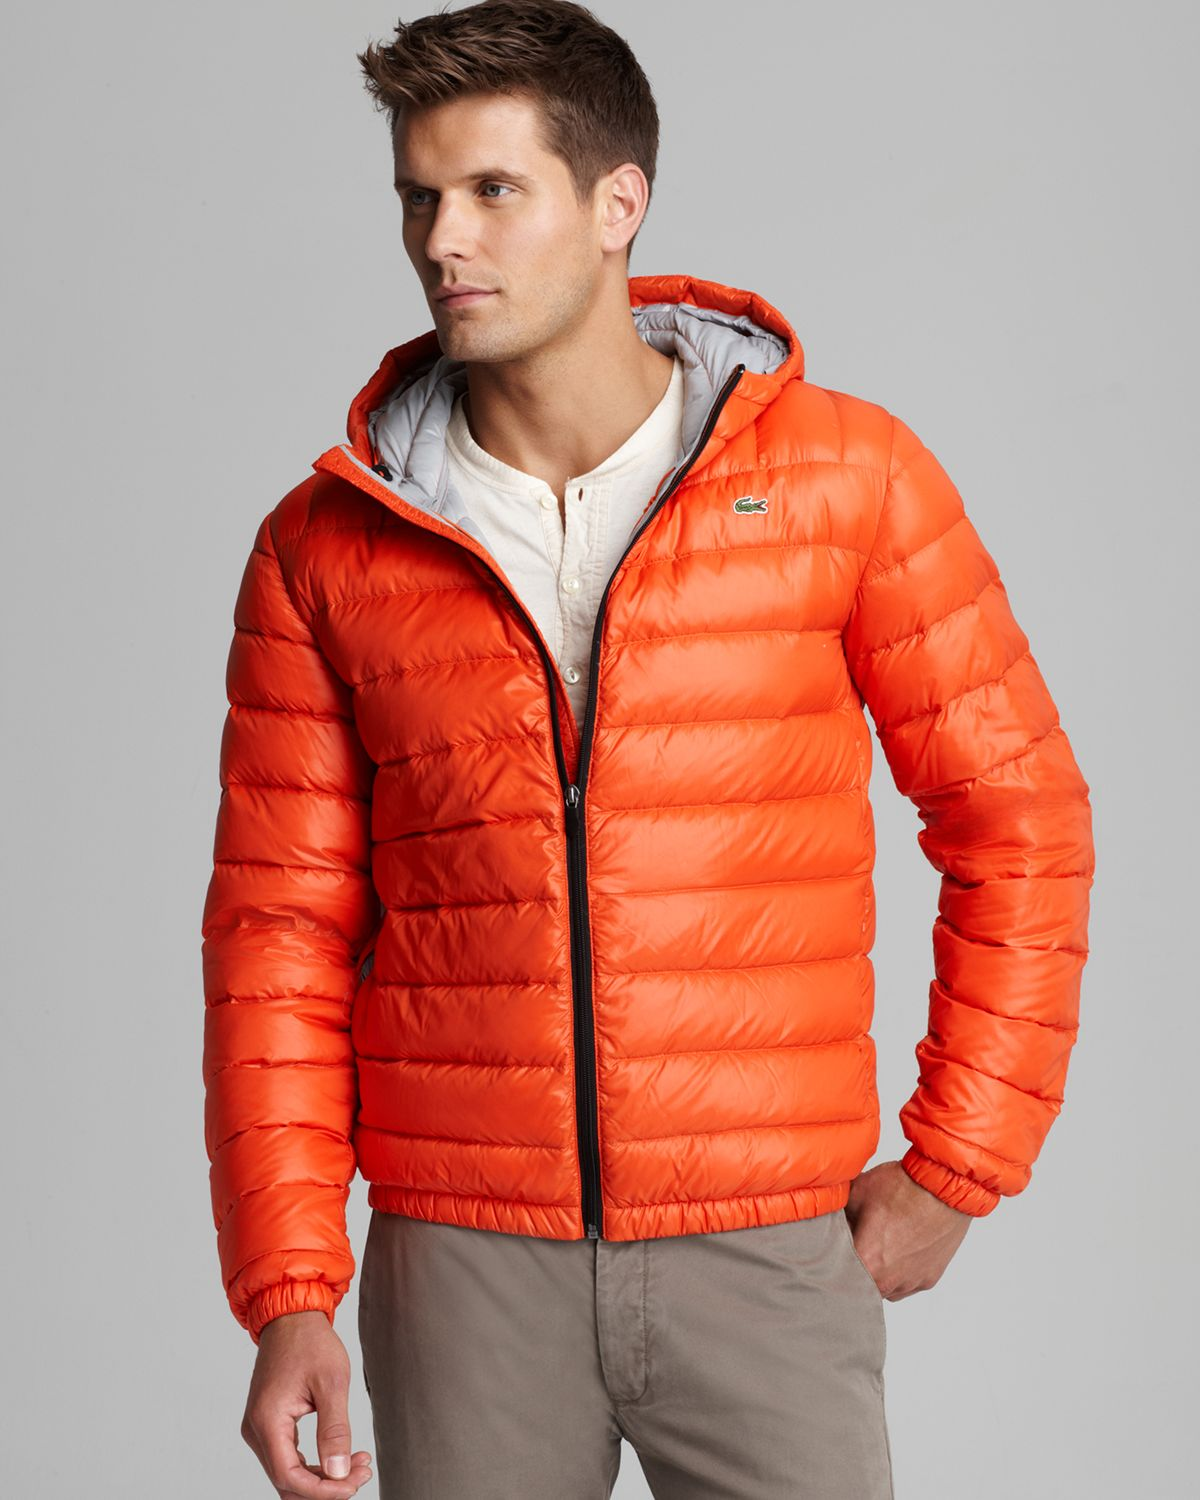 Lacoste Featherweight Packable Down Jacket In Orange For